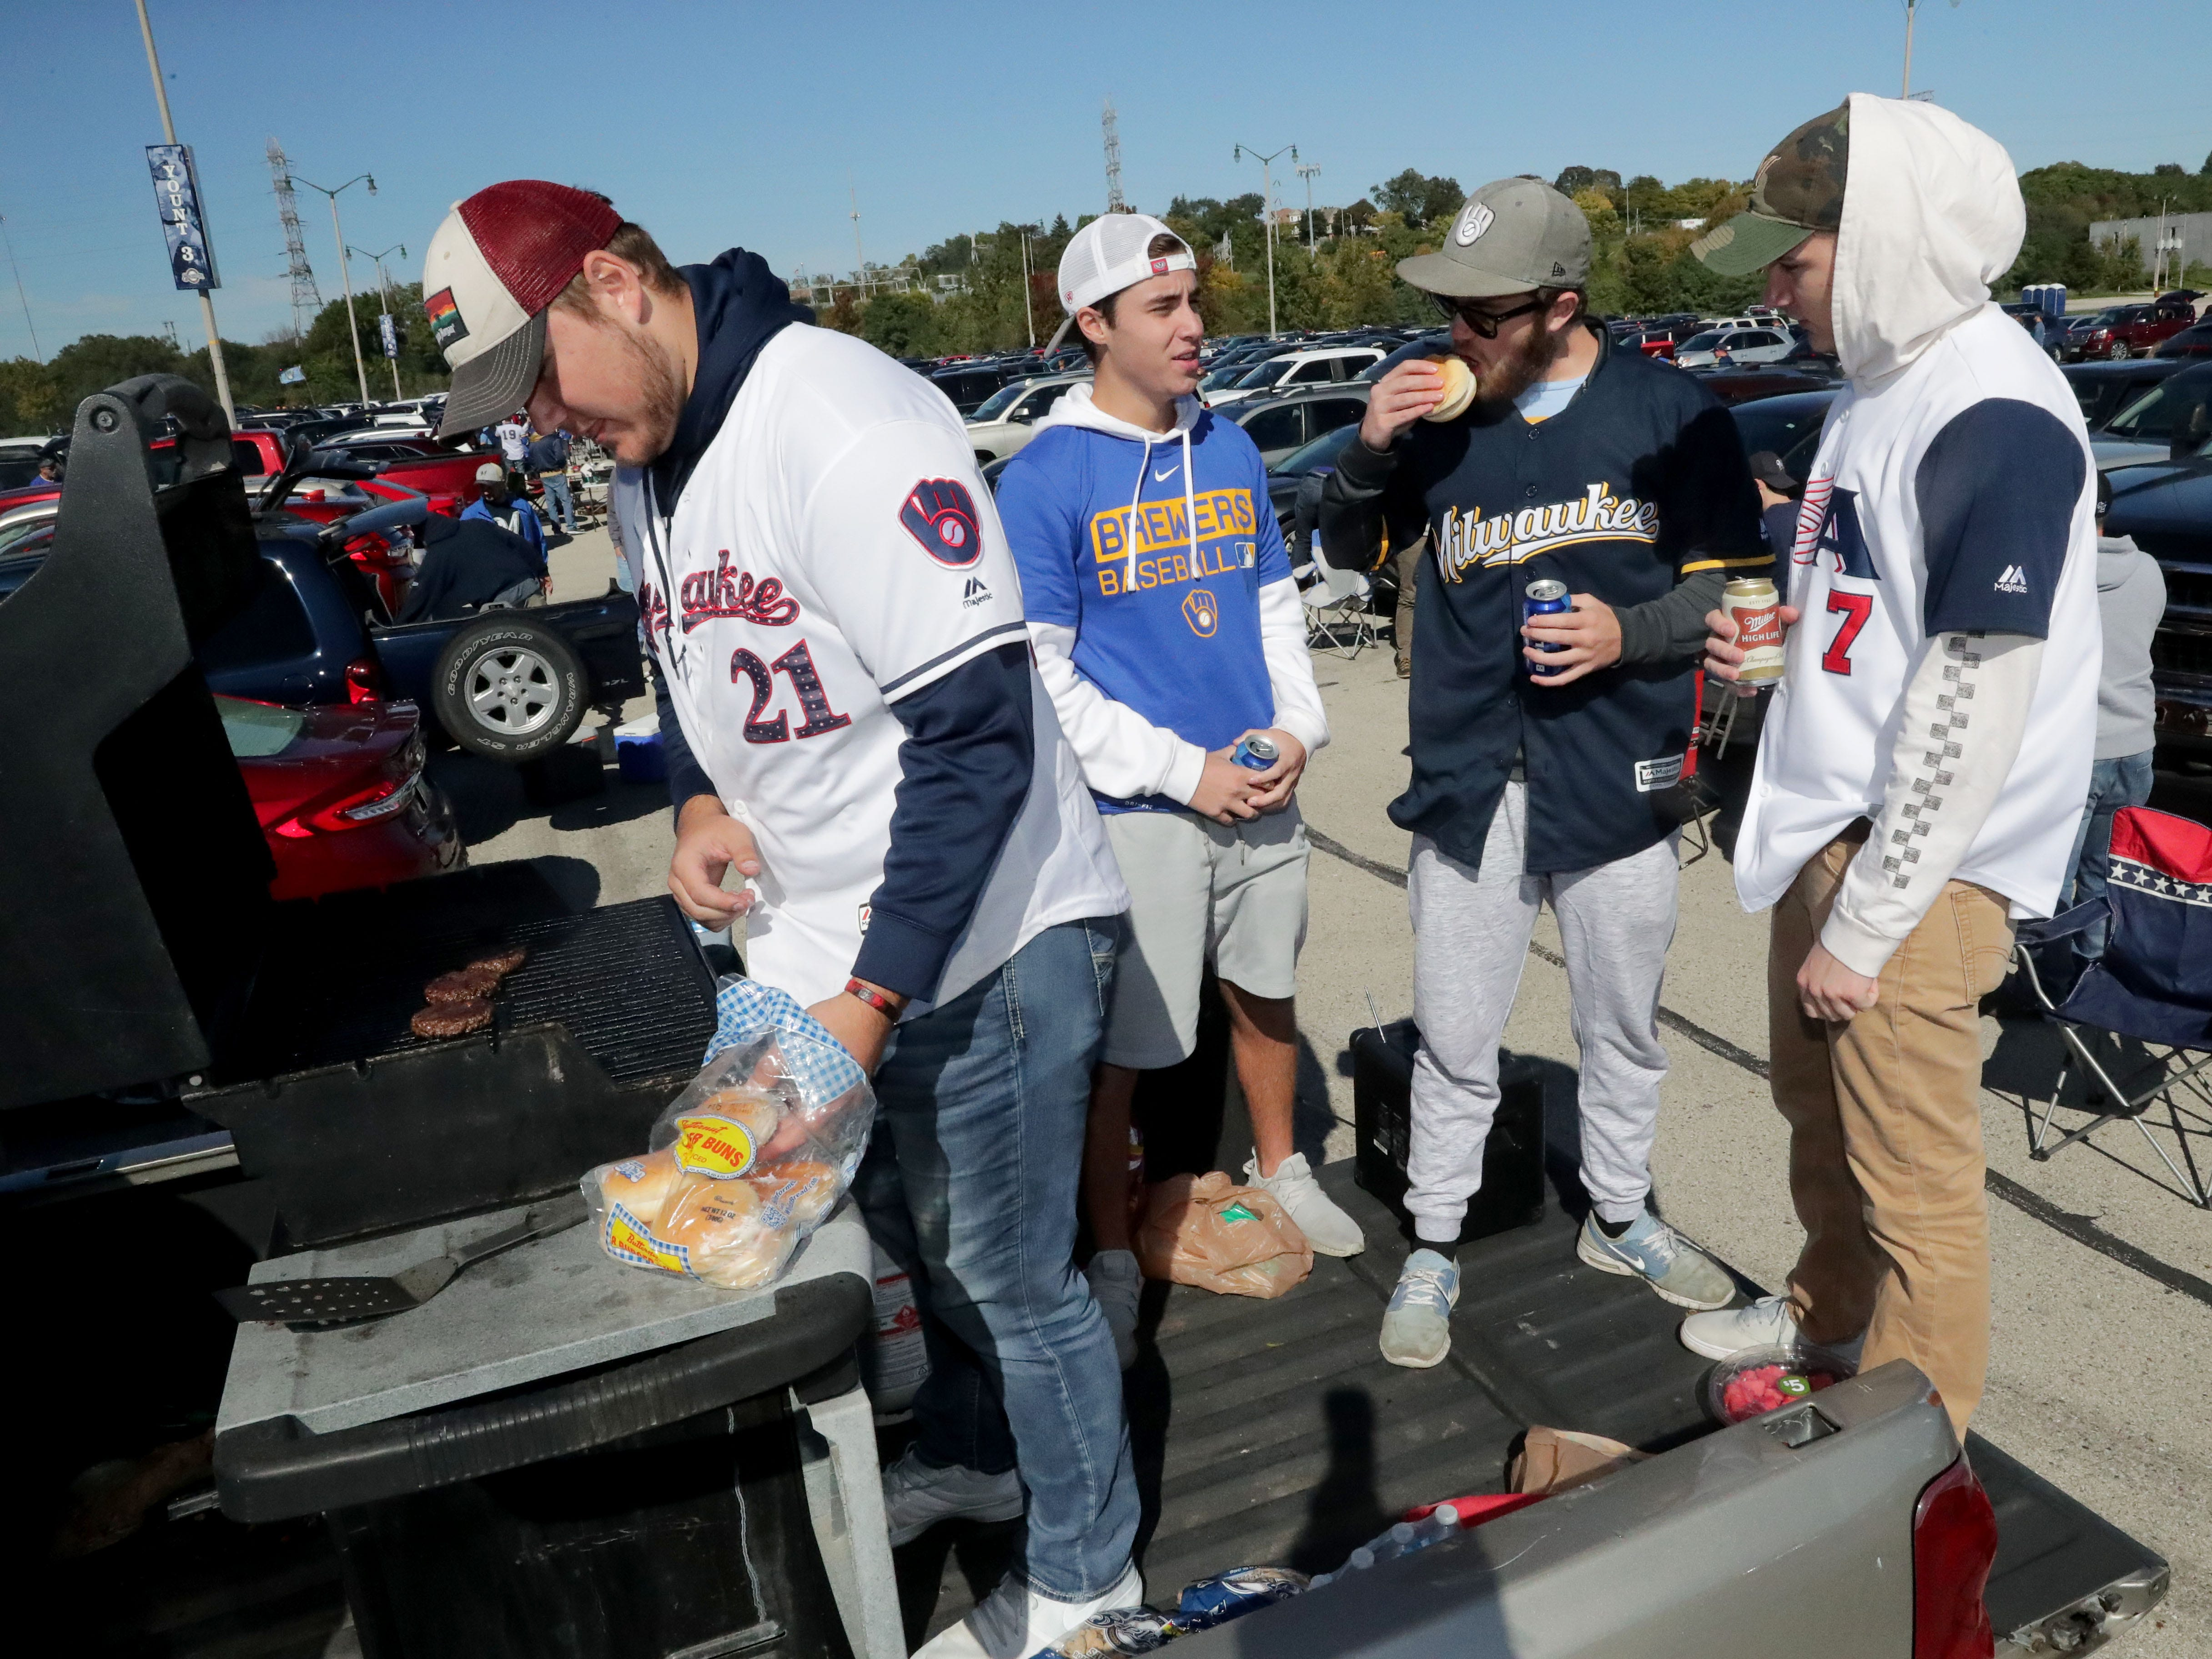 Brewers fans Parker Theel (from left), Stathis Demopoulos, Anthony Pascutti and Joey Glembocki, all of  Muskego, tailgate from the back of Theel's pickup truck before the Milwaukee Brewers' National League Divisional Series game against the Colorado Rockies on Thursday.